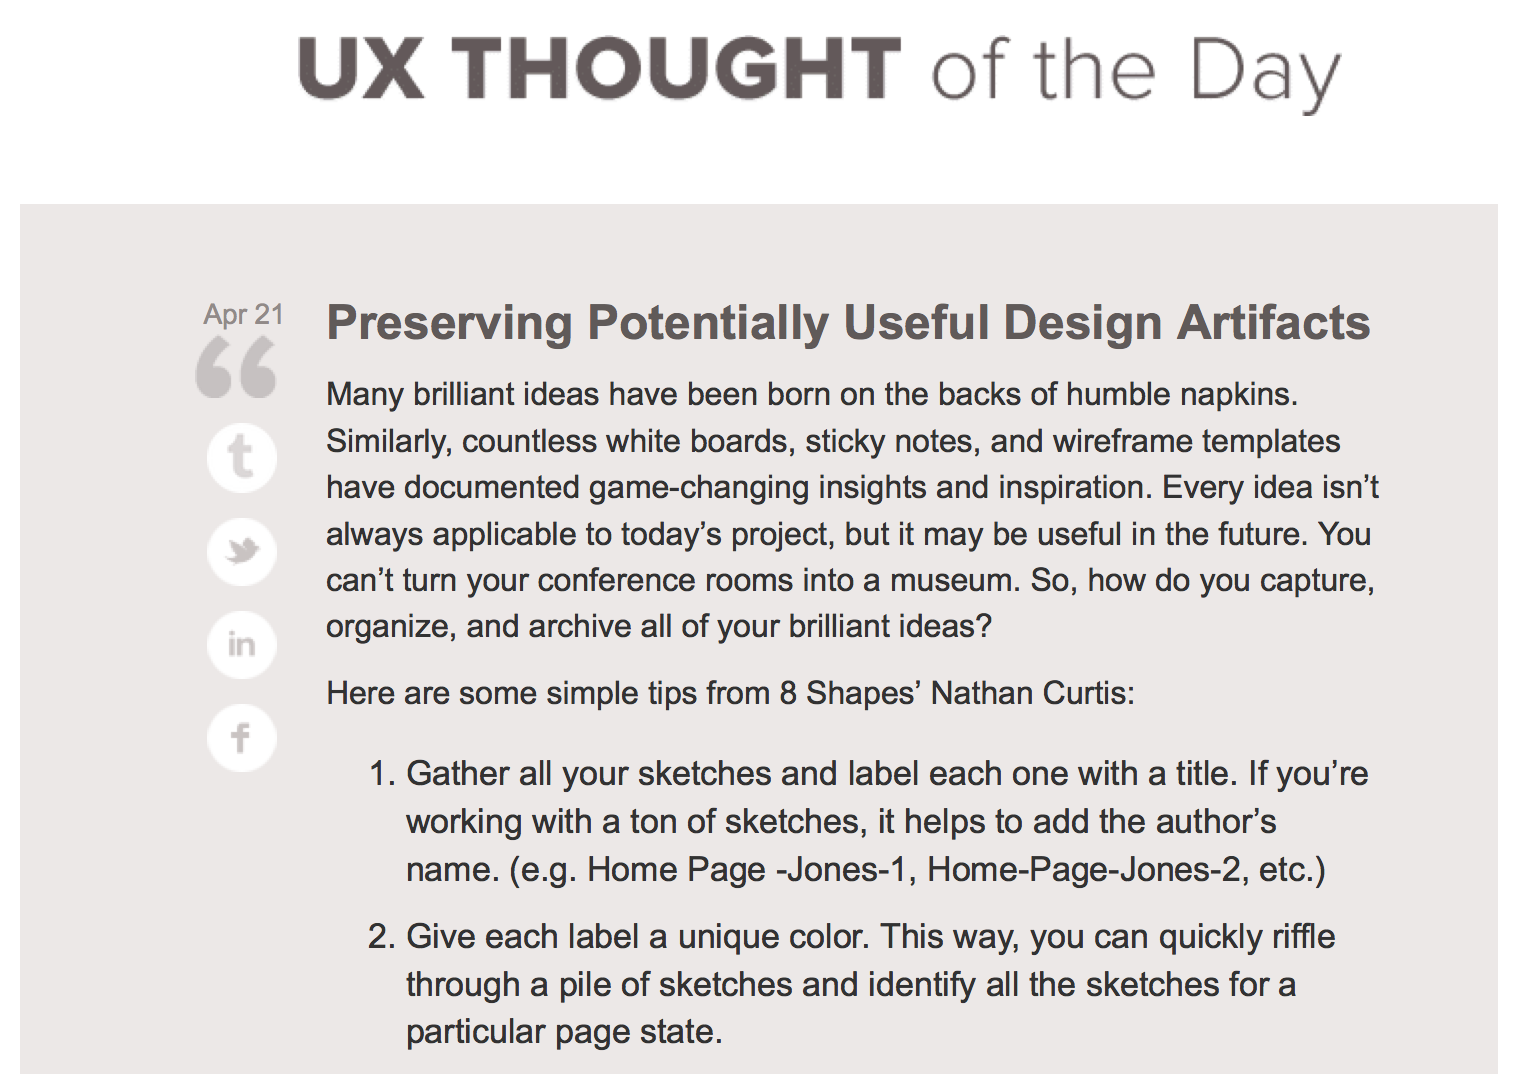 UX Thought of the Day